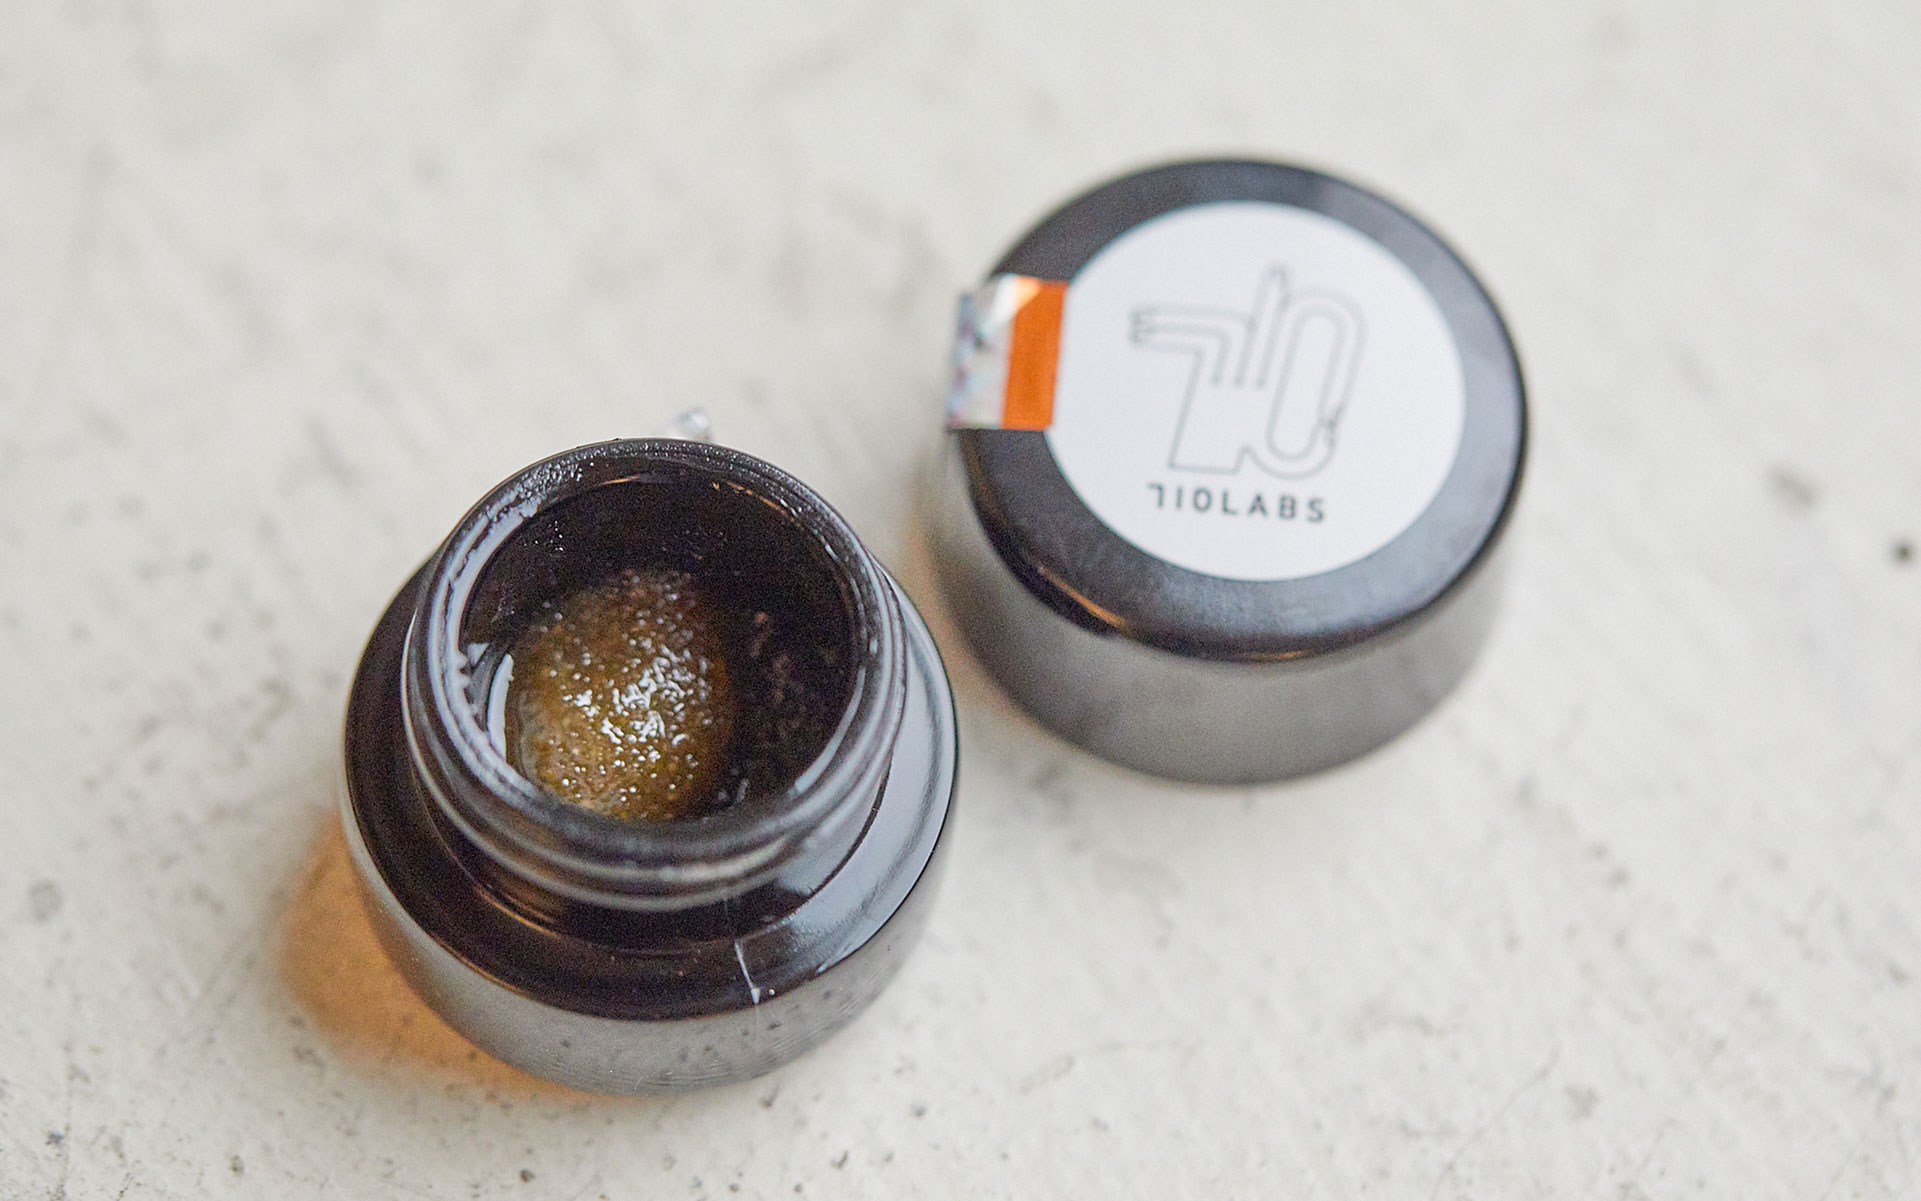 710 Labs sugar live resin hash cannabis concnetrate